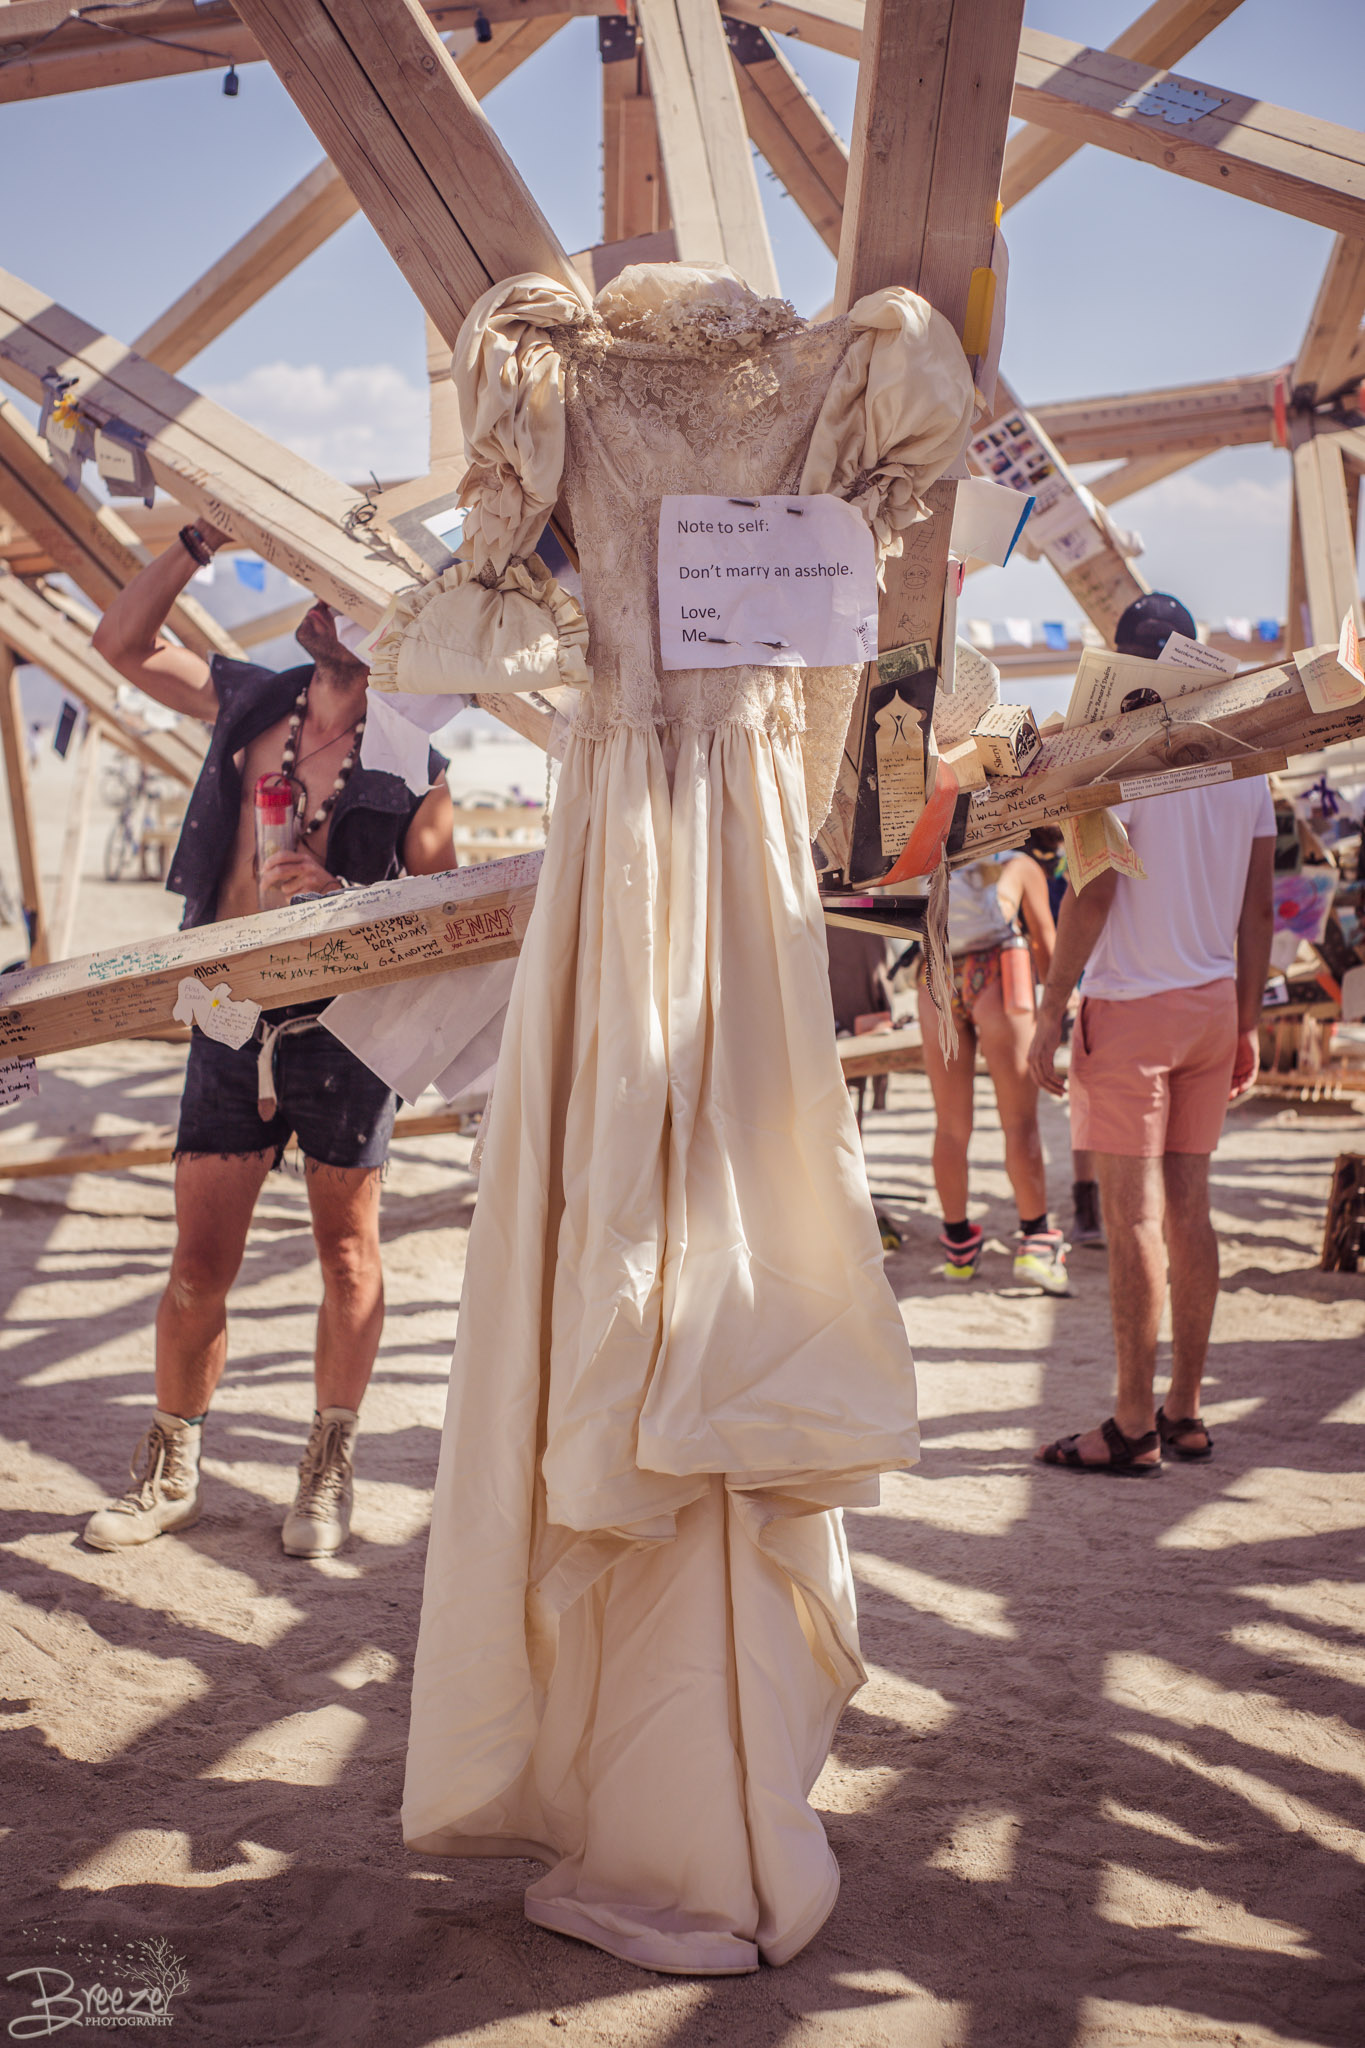 Brie'Ana Breeze Photography & Media - Burning Man 2018-4011.jpg